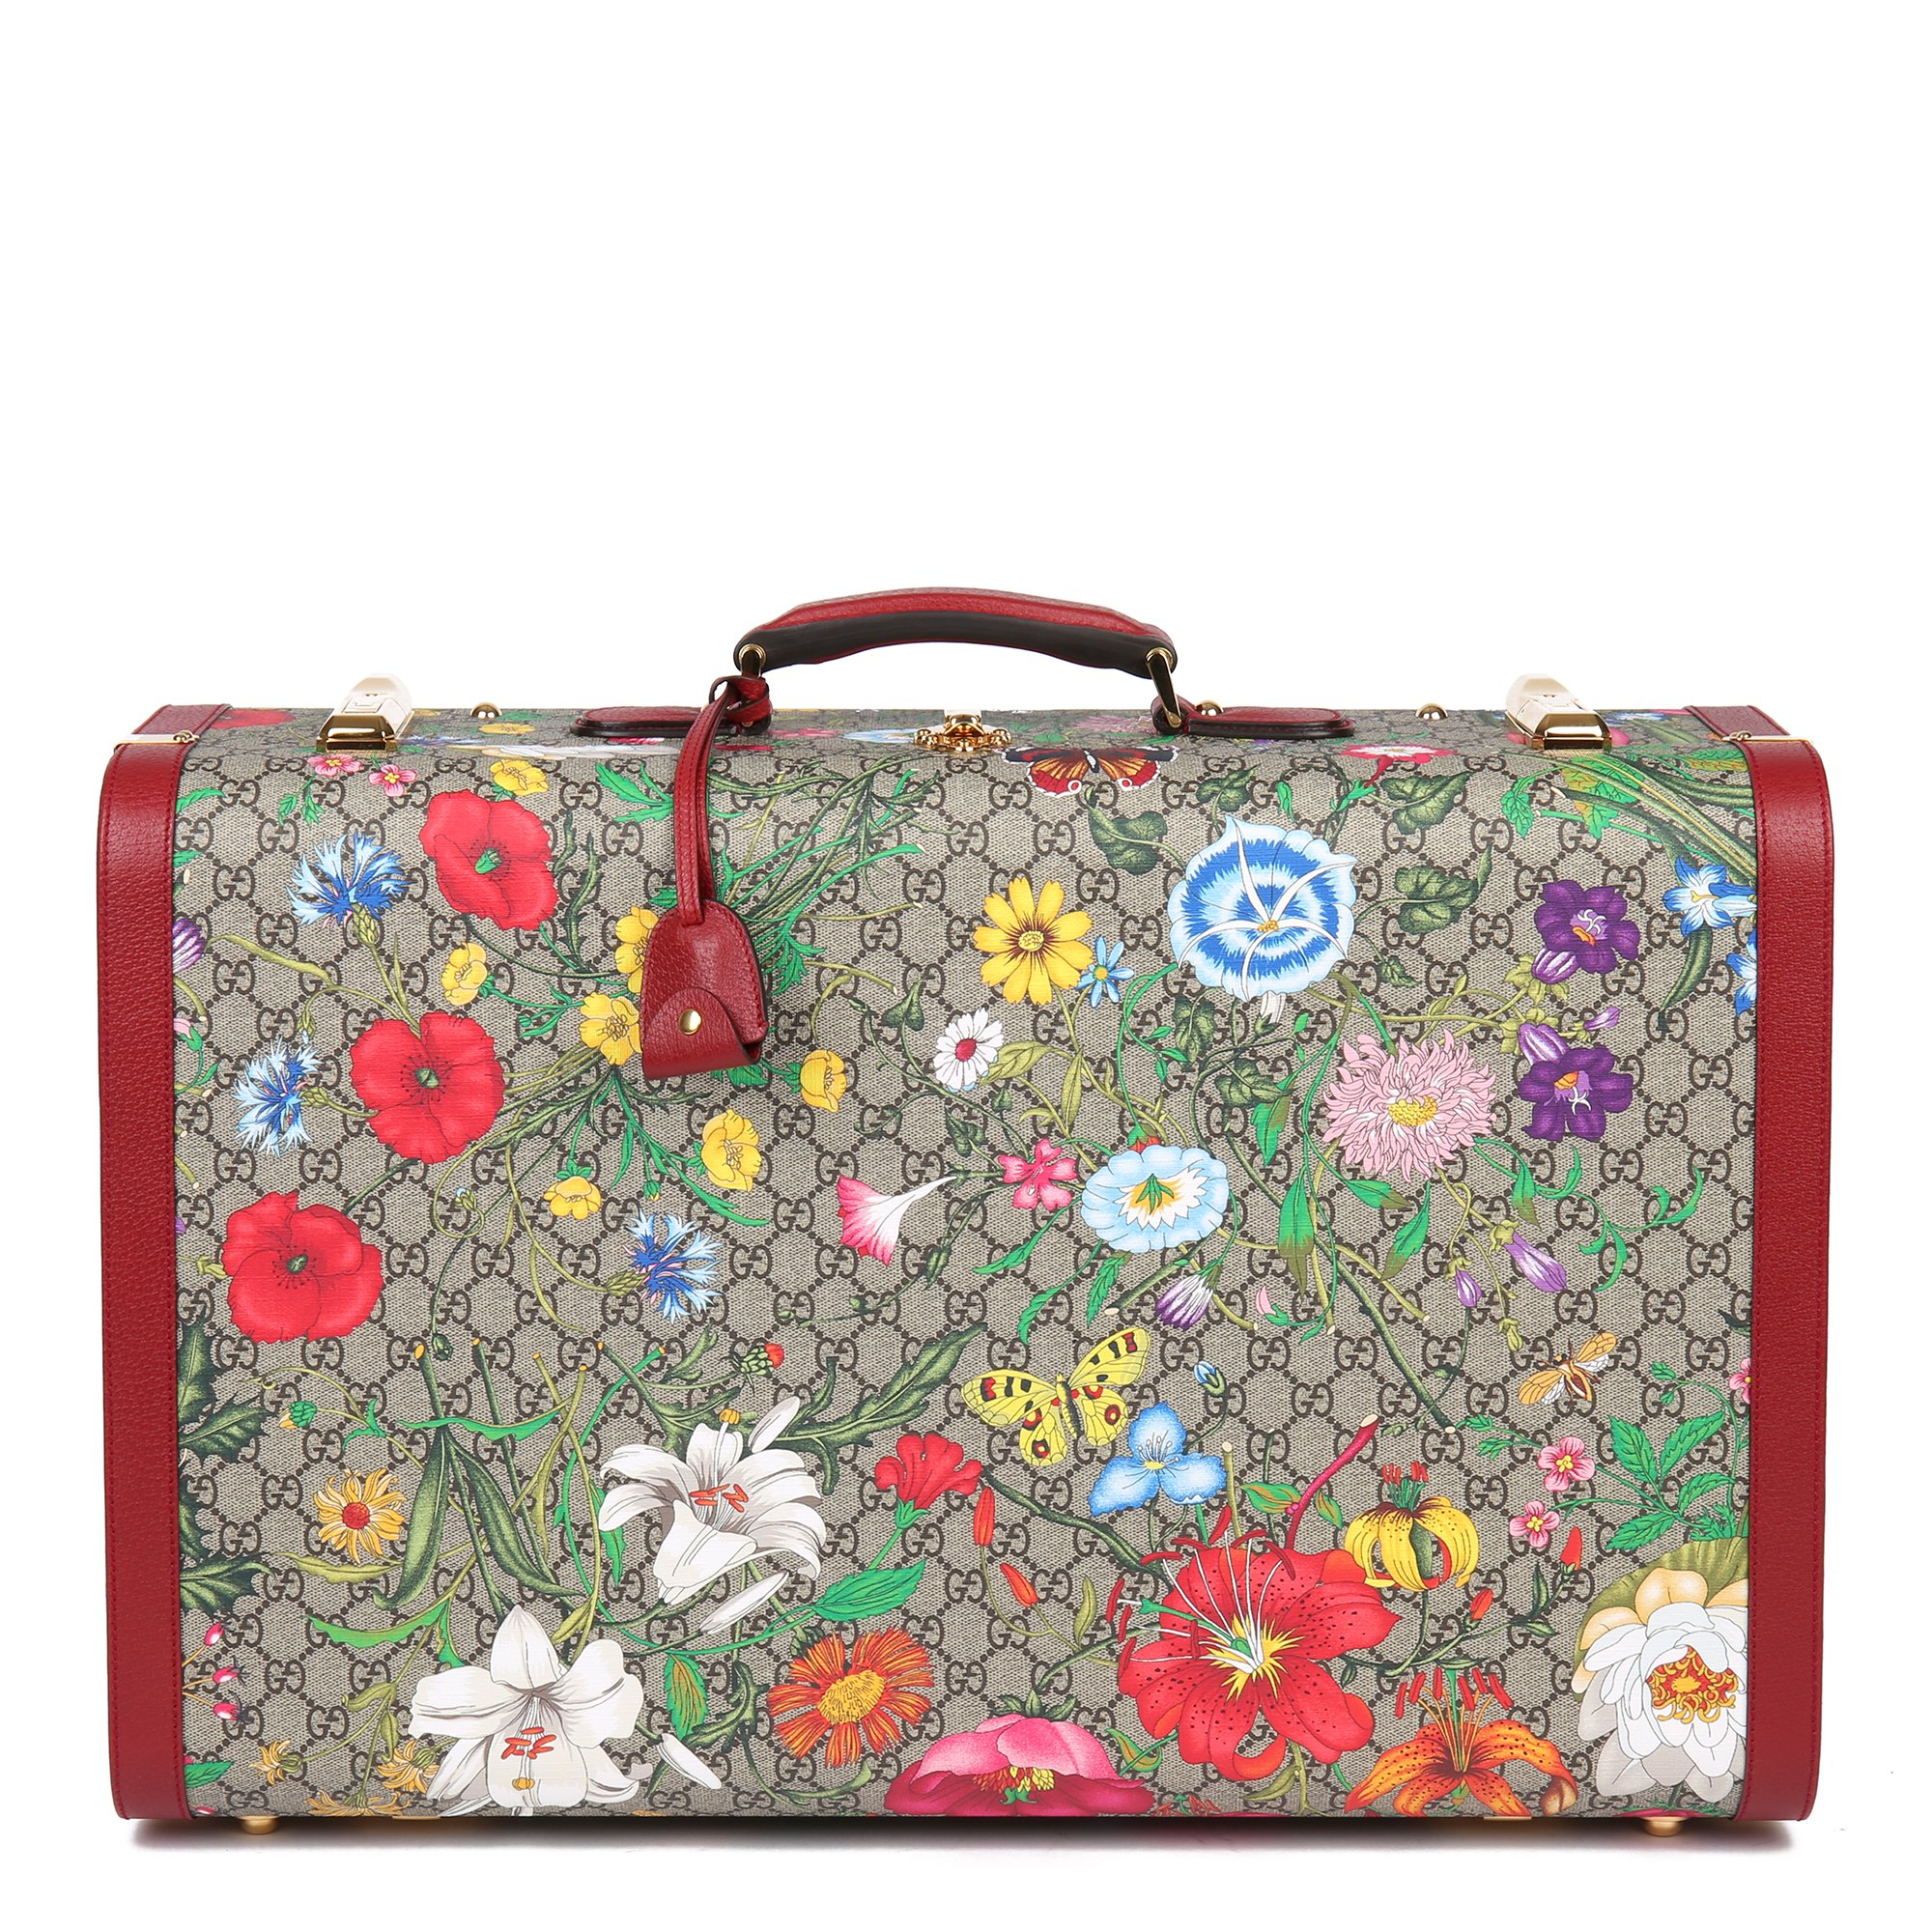 Gucci GG Flora Coated Canvas & Red Pigskin Leather Large Suitcase Trunk